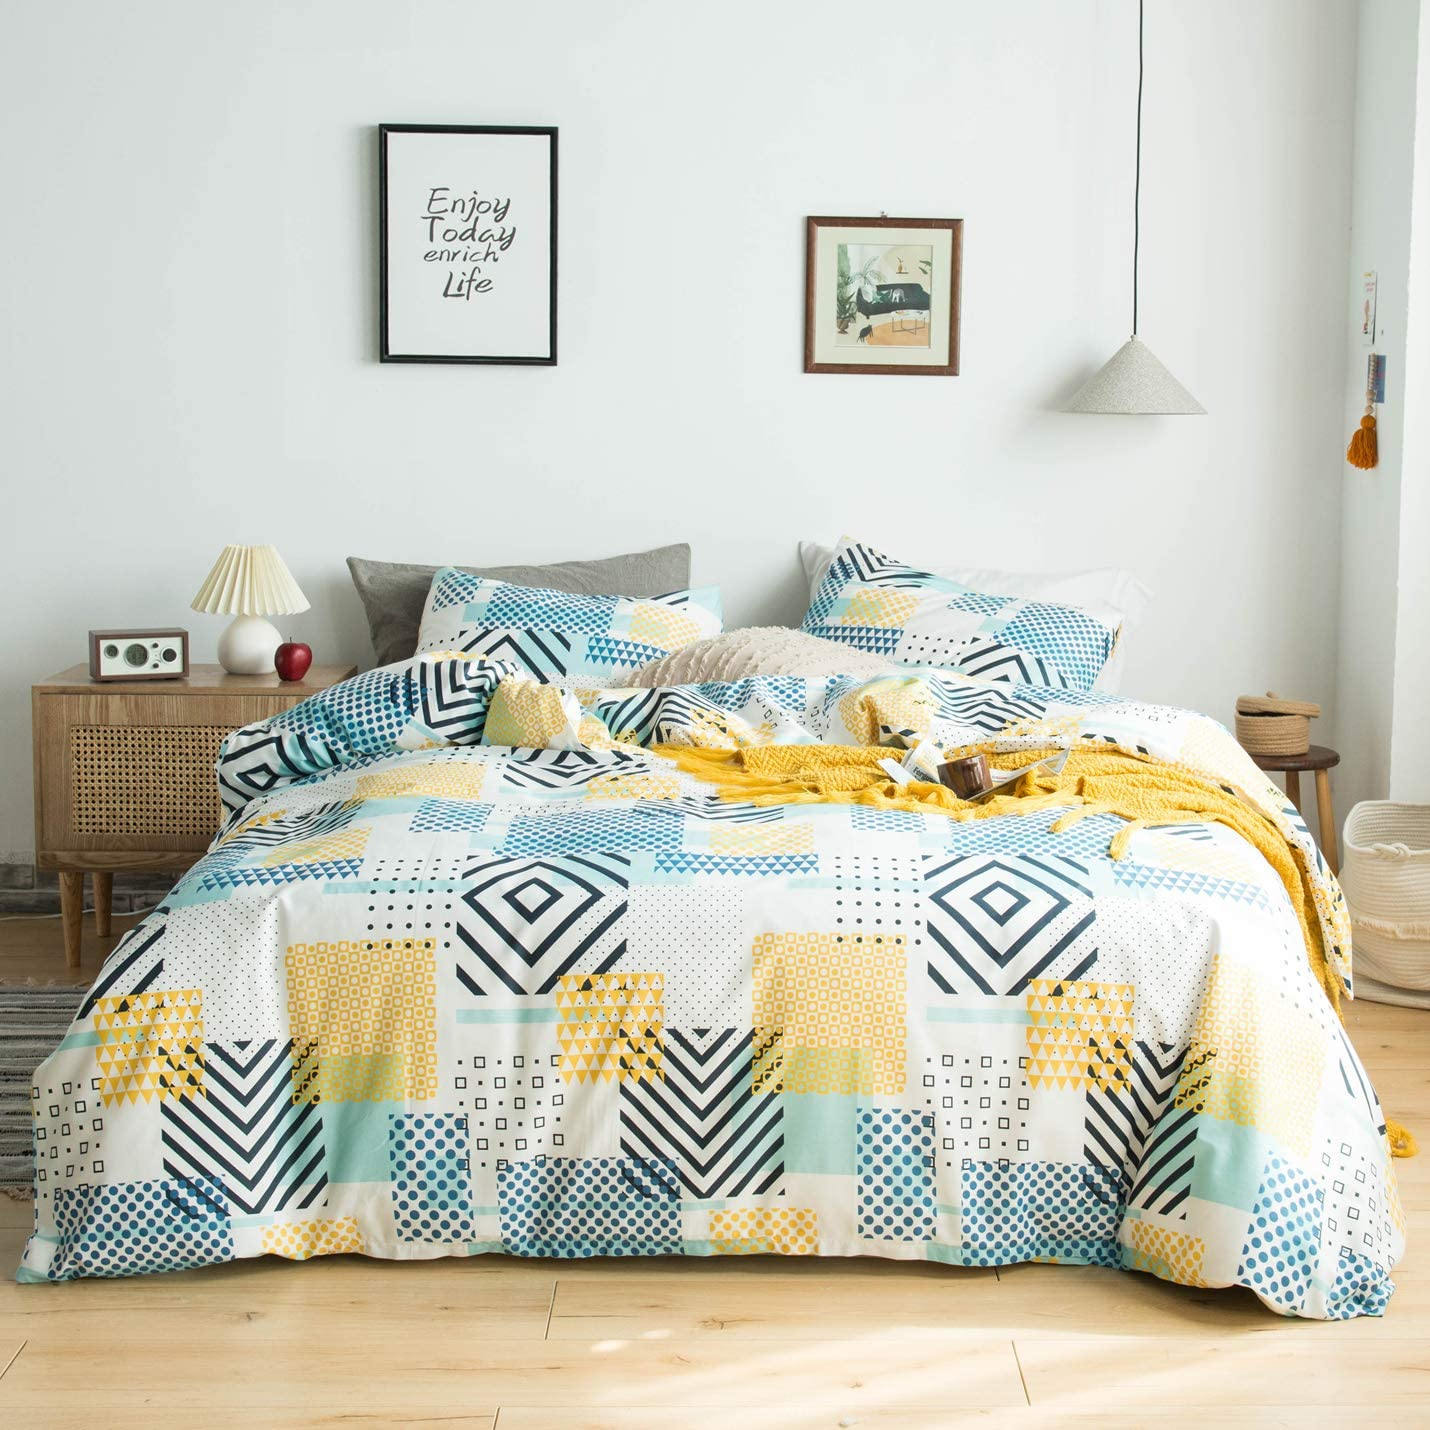 YuHeGuoJi 3 Pieces Duvet Cover Set 100% Cotton King Size Yellow Blue Geometric Bedding Set 1 Polka Dot Print Duvet Cover with Zipper Ties 2 Pillowcases Luxurious Quality Soft Lightweight Breathable